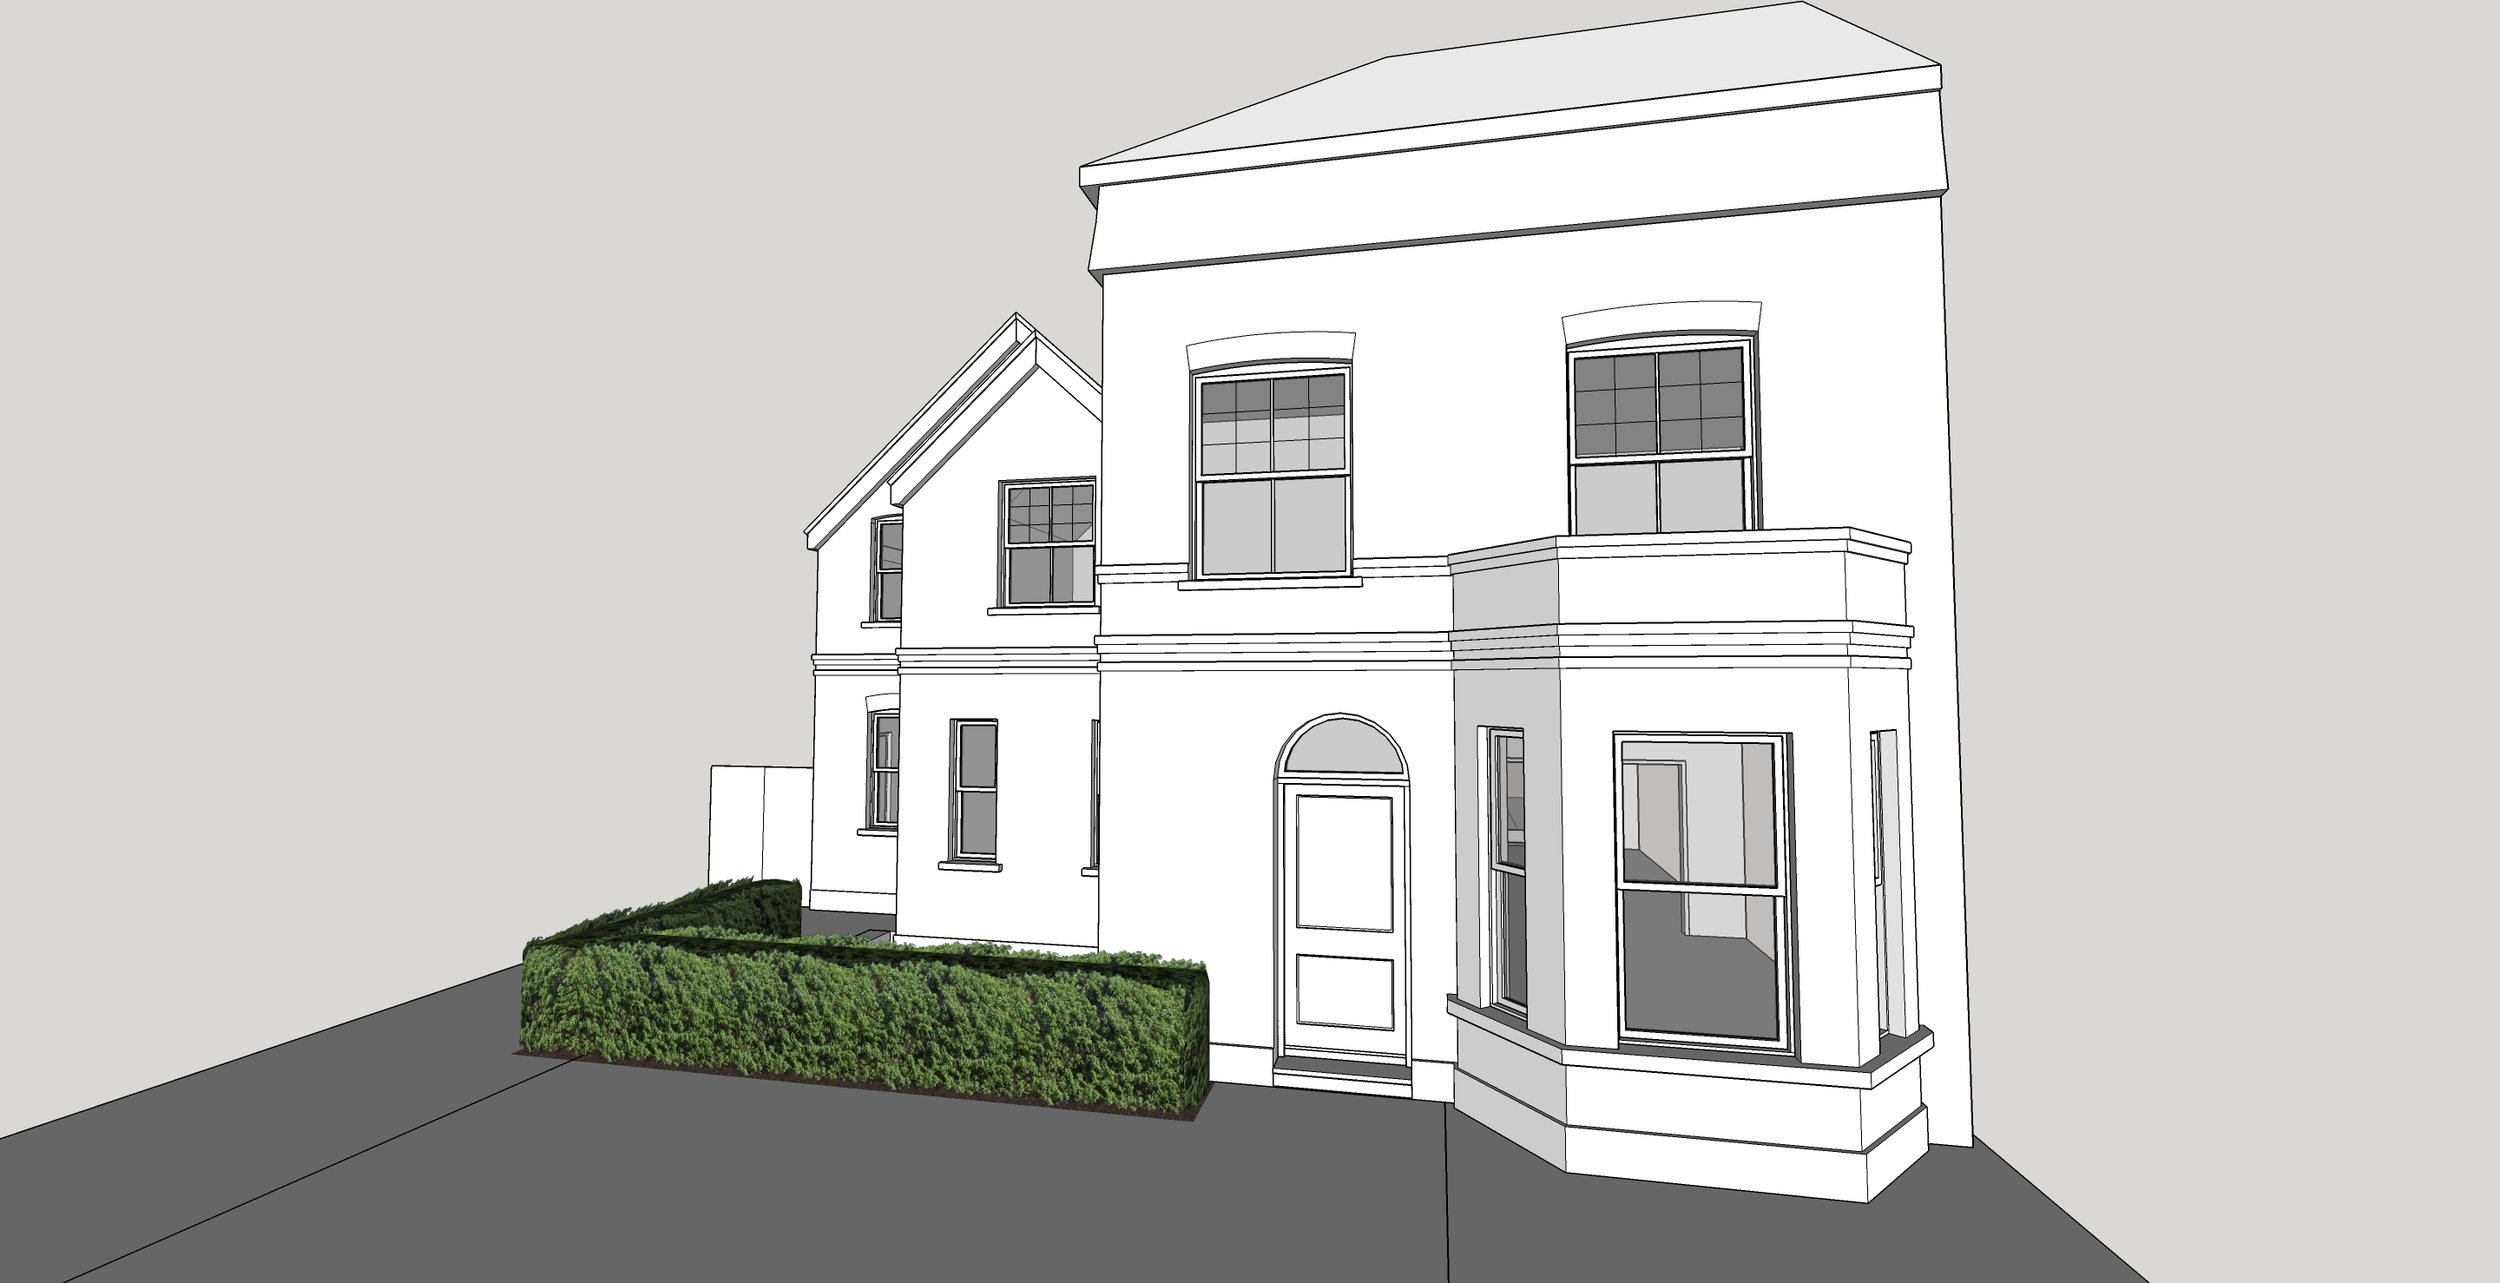 3D modelling exercise for a pre-planning application in Wandsworth